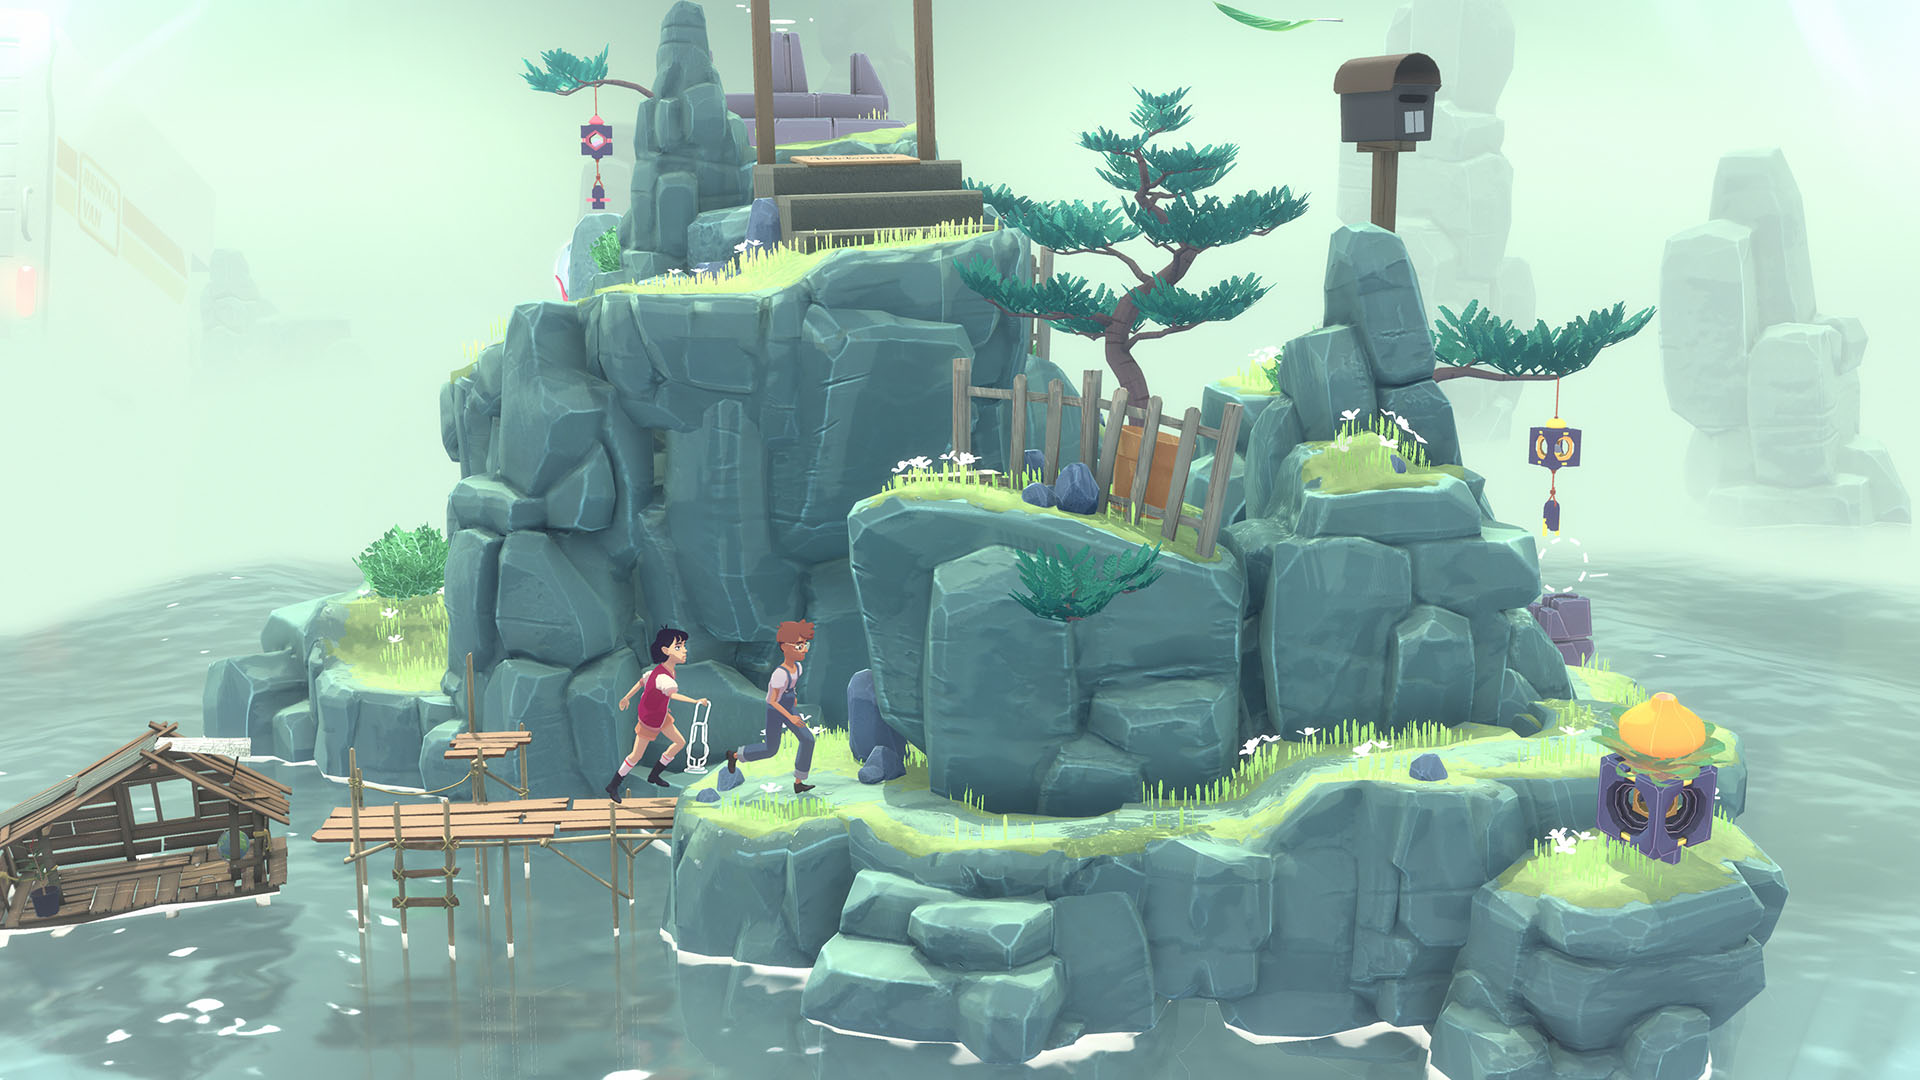 adventure, indie, Nintendo Switch Review, Puzzle, Rating 10/10, Relaxing, Surreal, Switch Review, The Gardens Between, The Gardens Between Review, The Voxel Agents